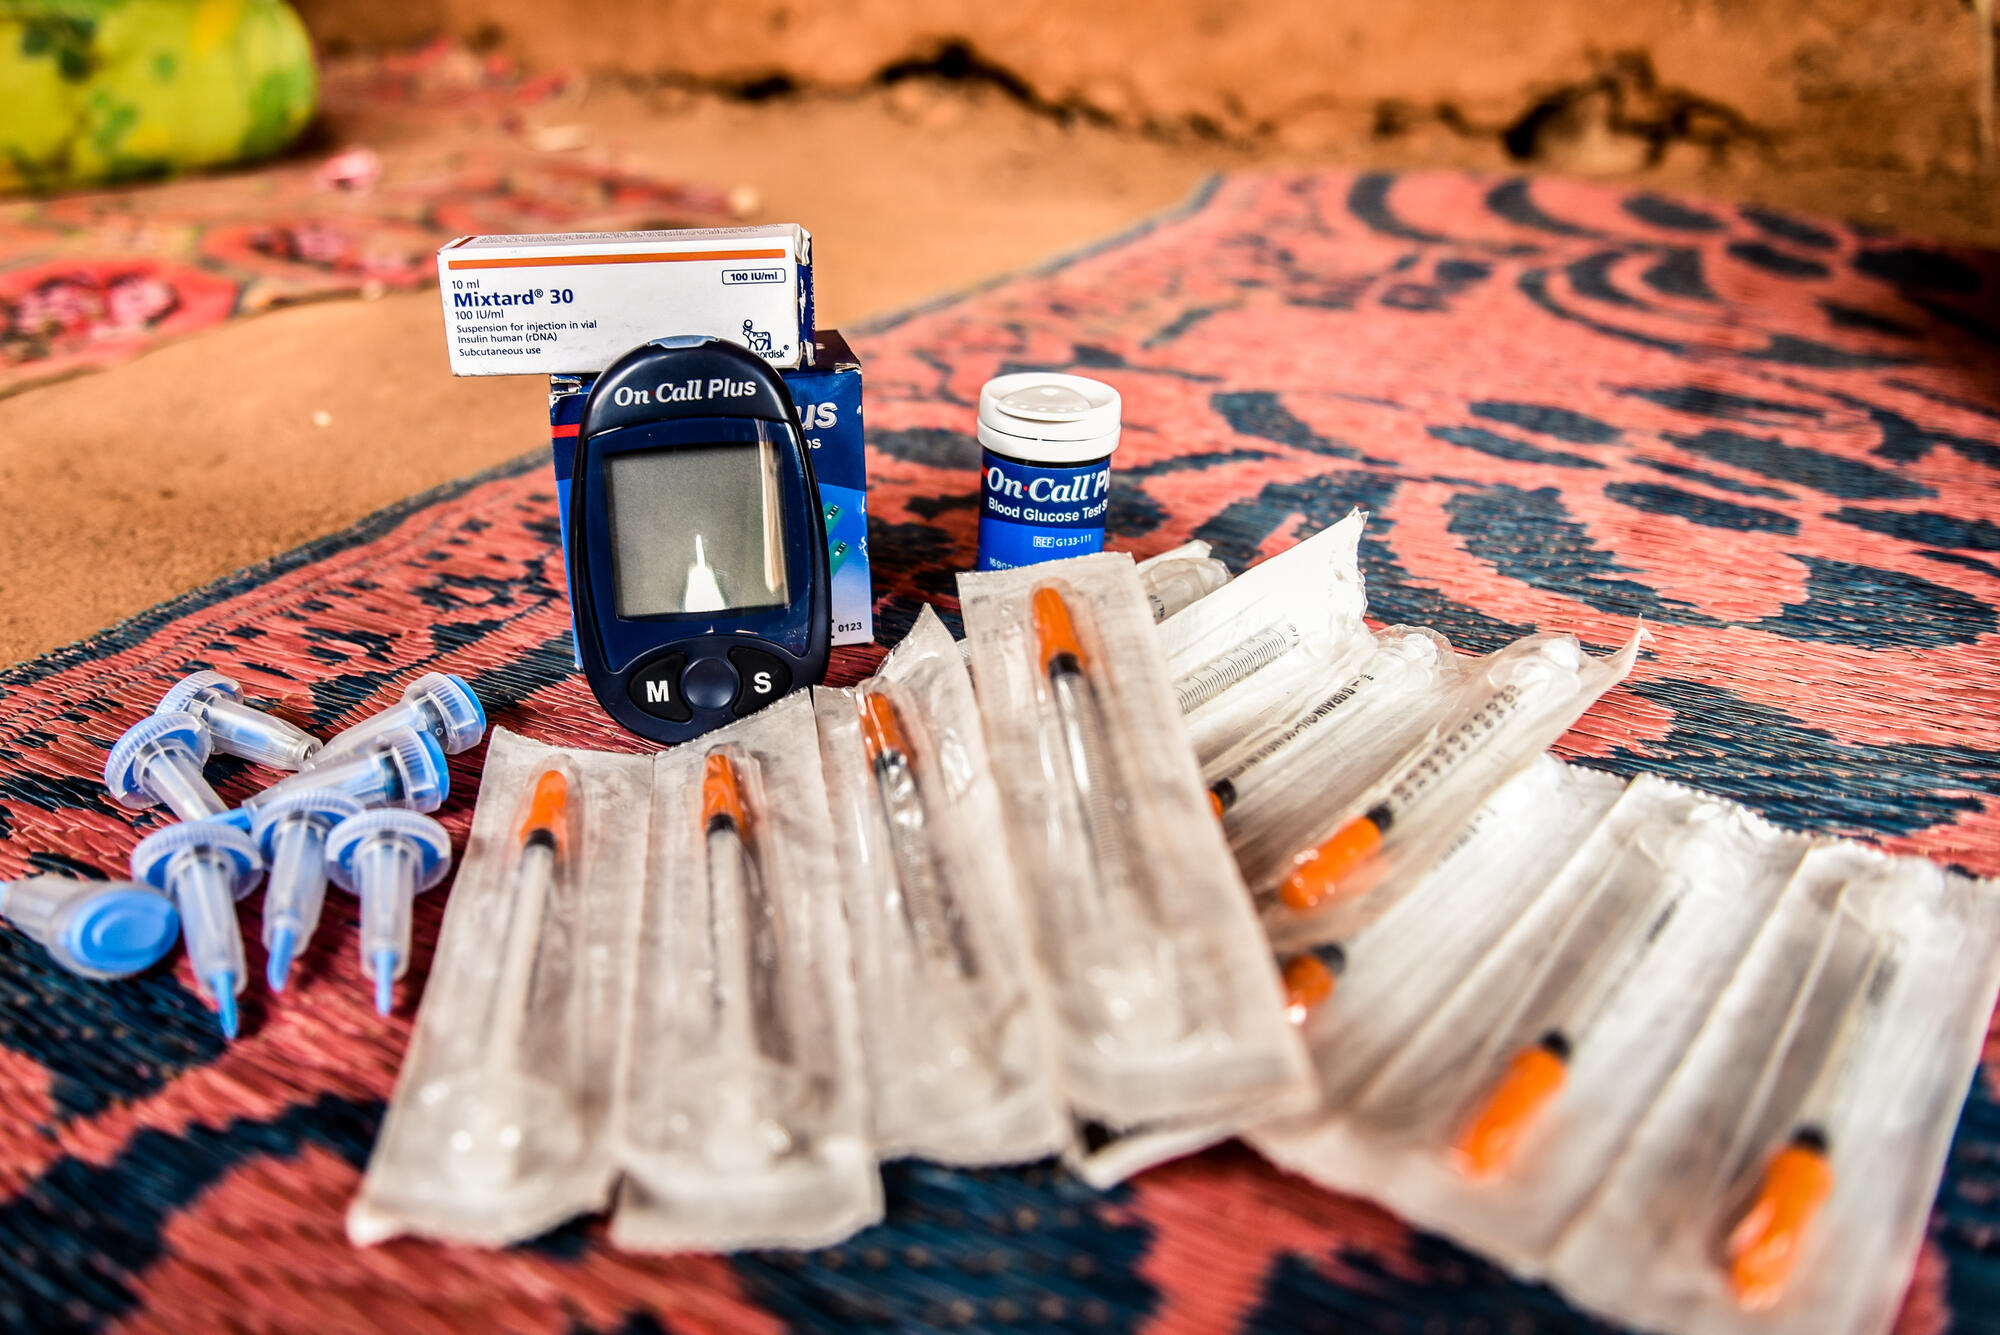 A treatment kit for patients with type 1 diabetes including a glucometer and glucometer strips, needles, insulin among others.